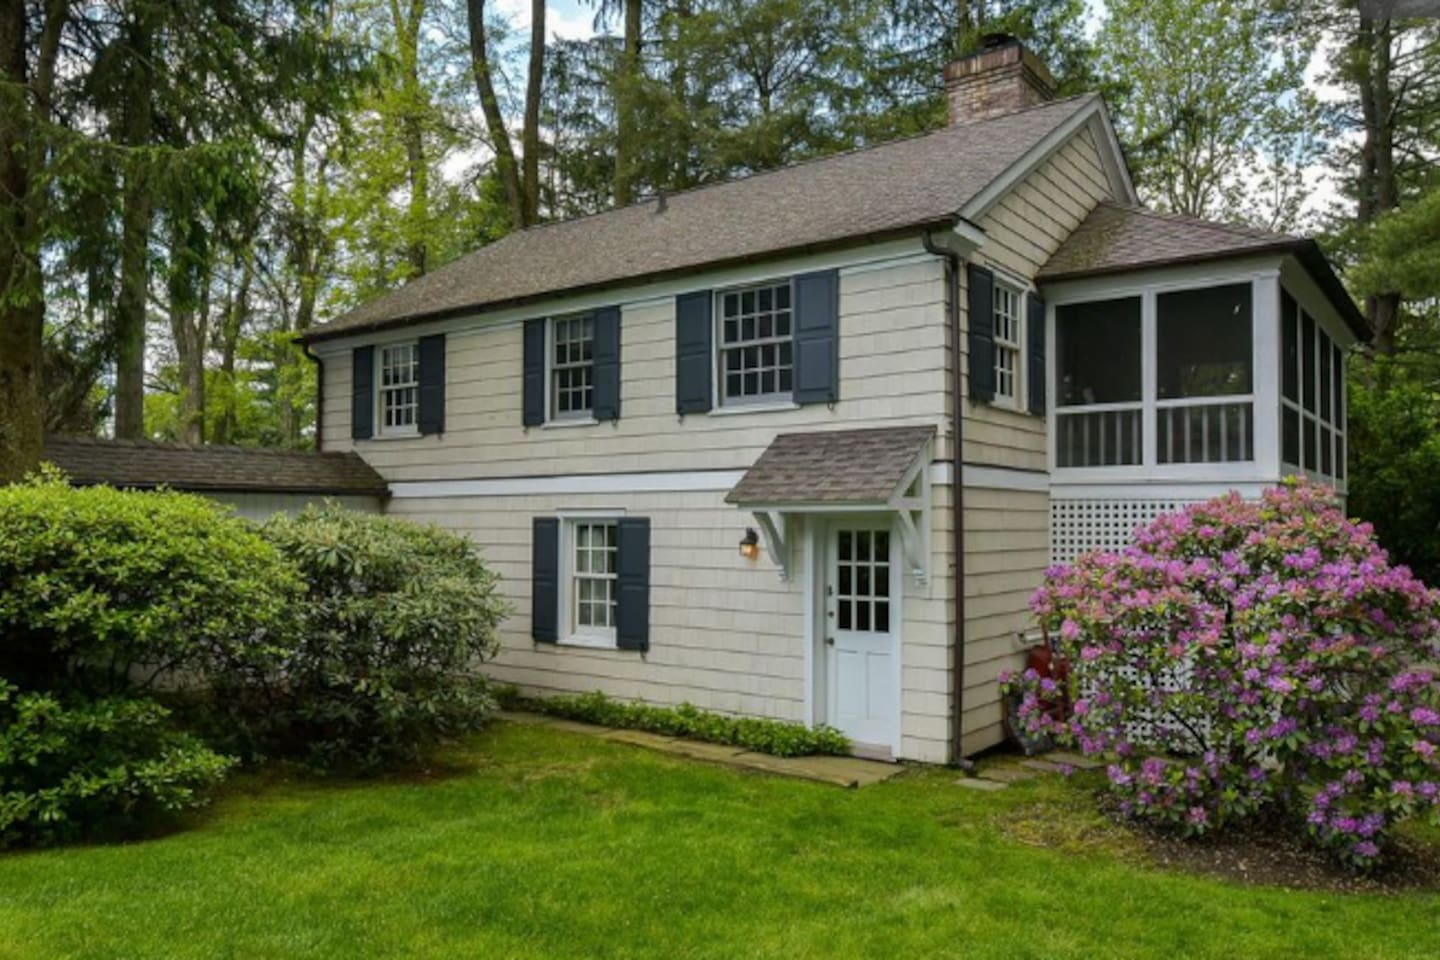 Cozy 2 bedroom cottage above garage with separate entrance, parking and screened in patio.